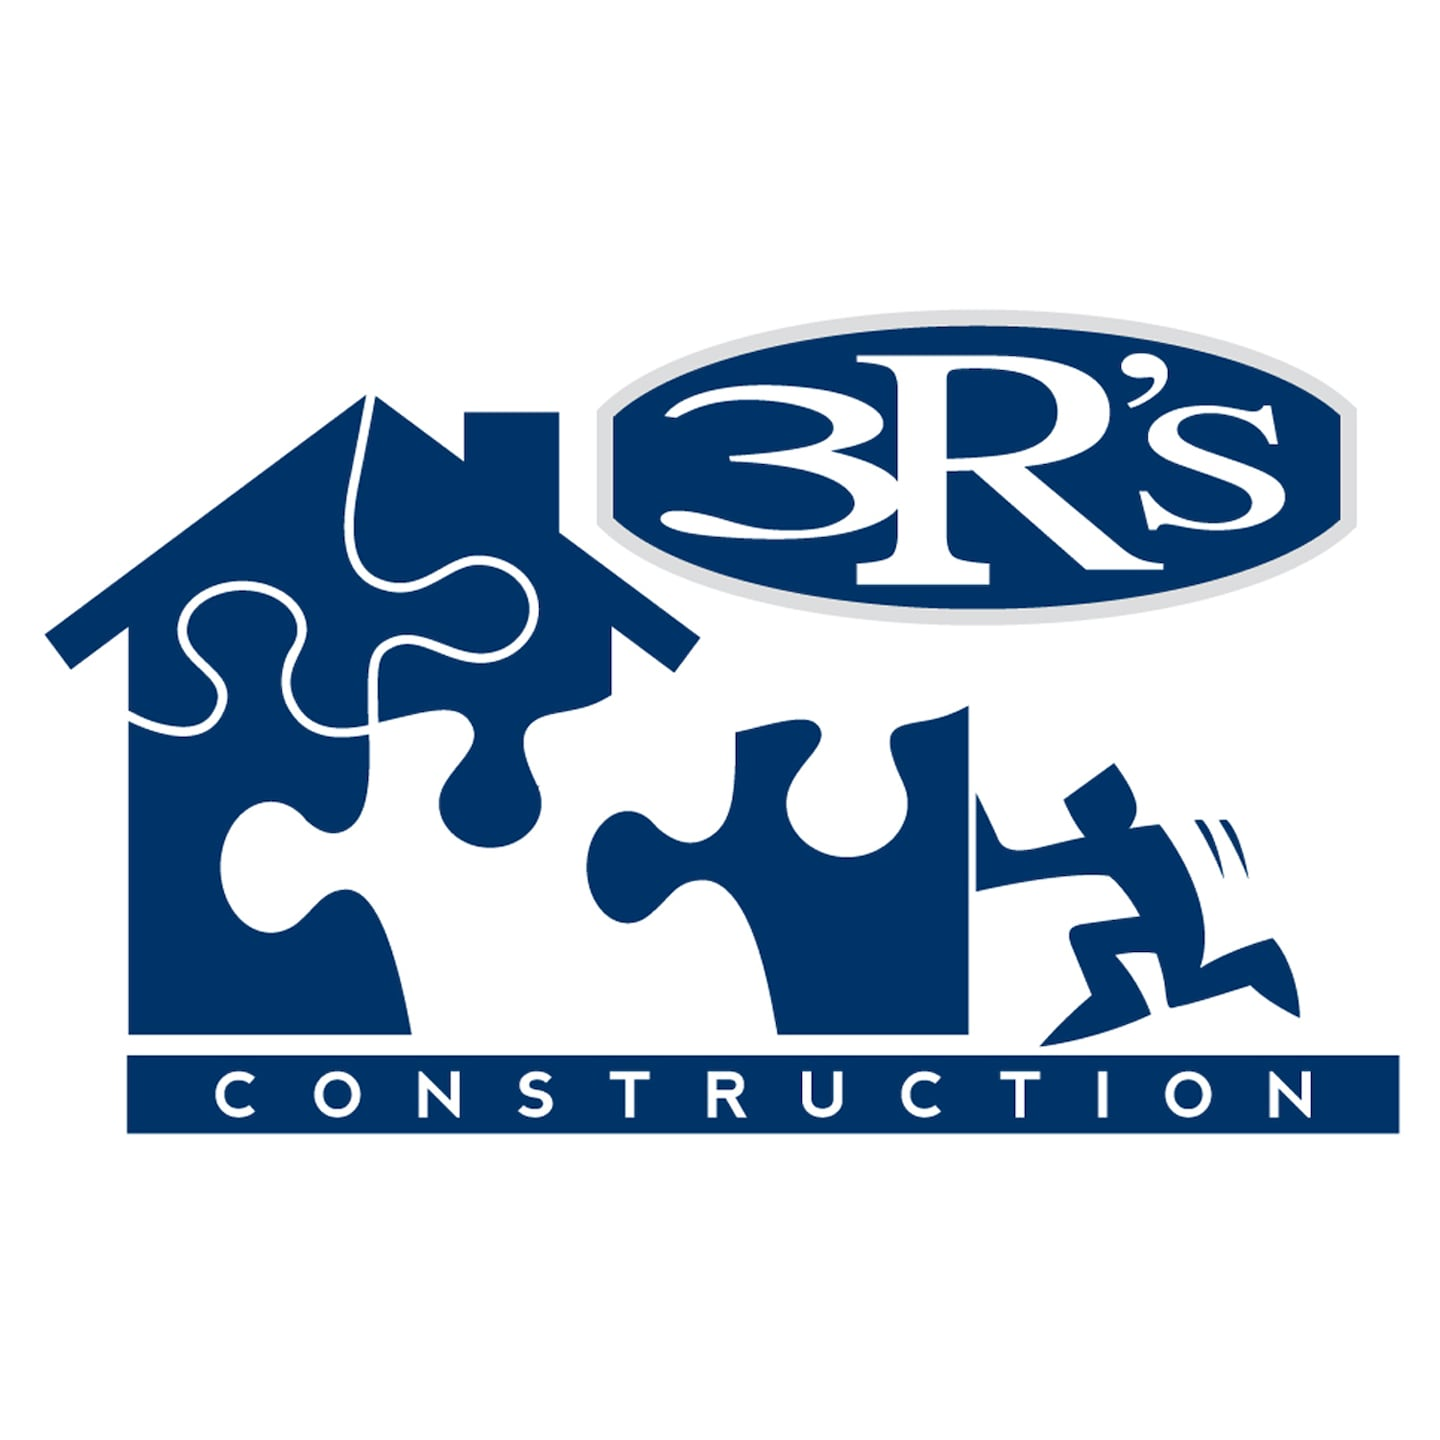 3 R's Construction Management LLC